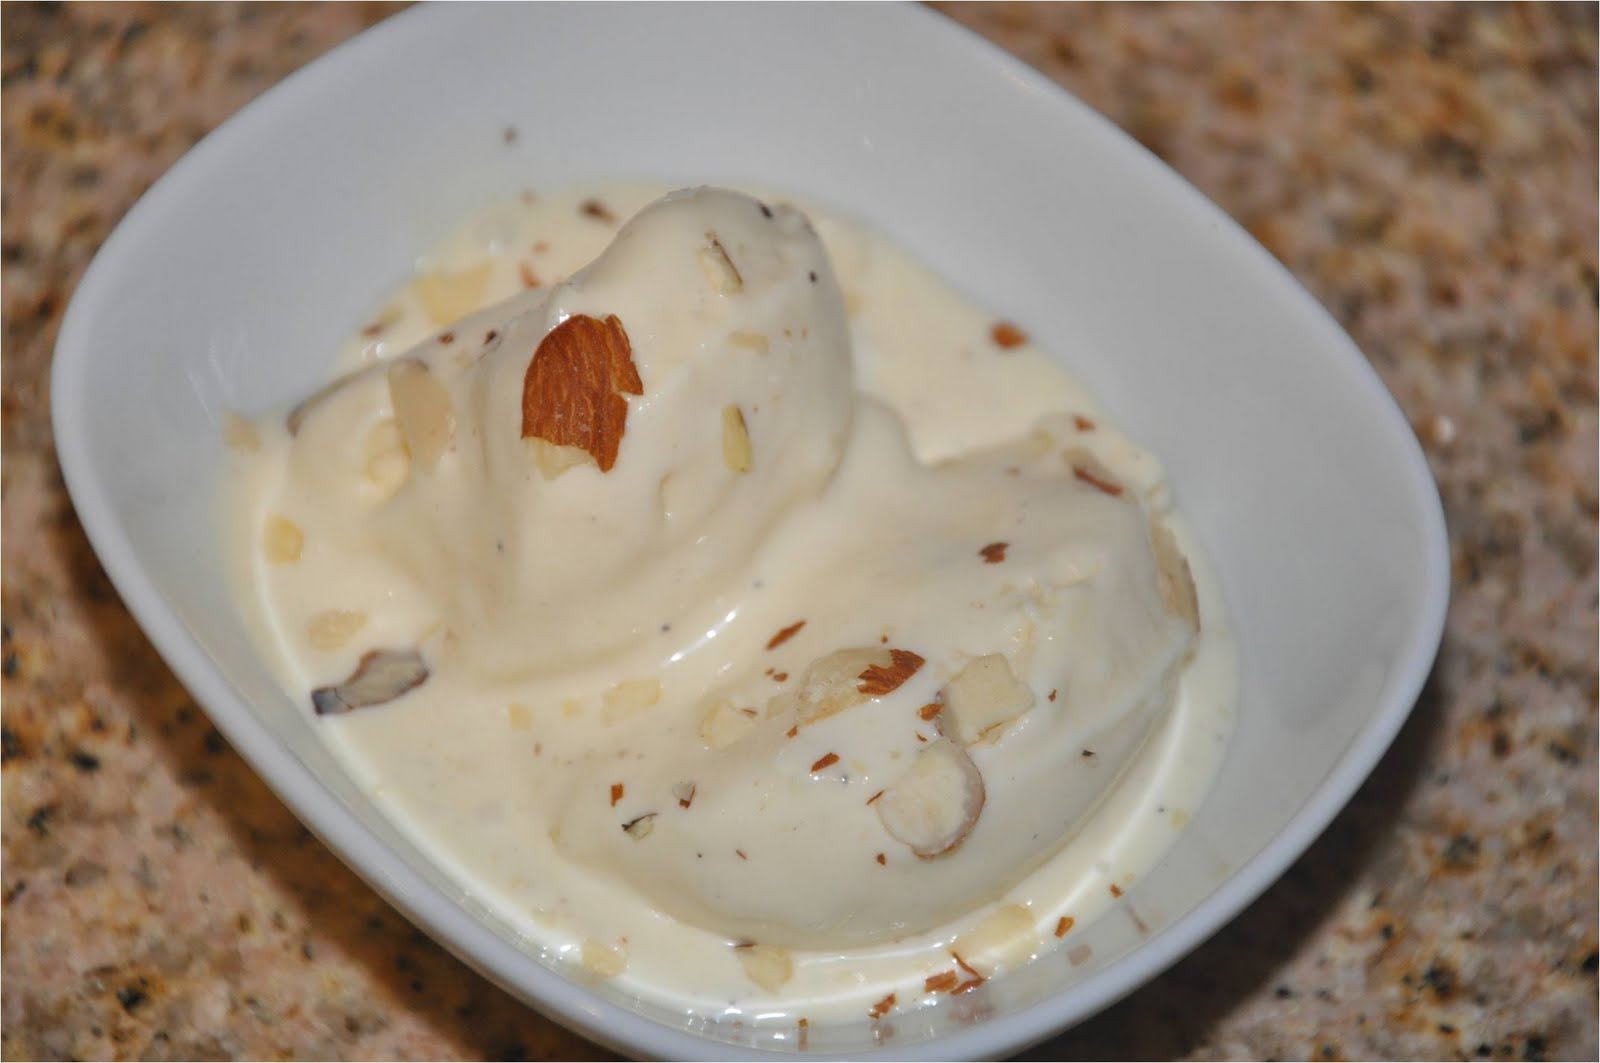 ... Recipes - Rajasthan A State in Western India: Malai Kulfi (Quick Way